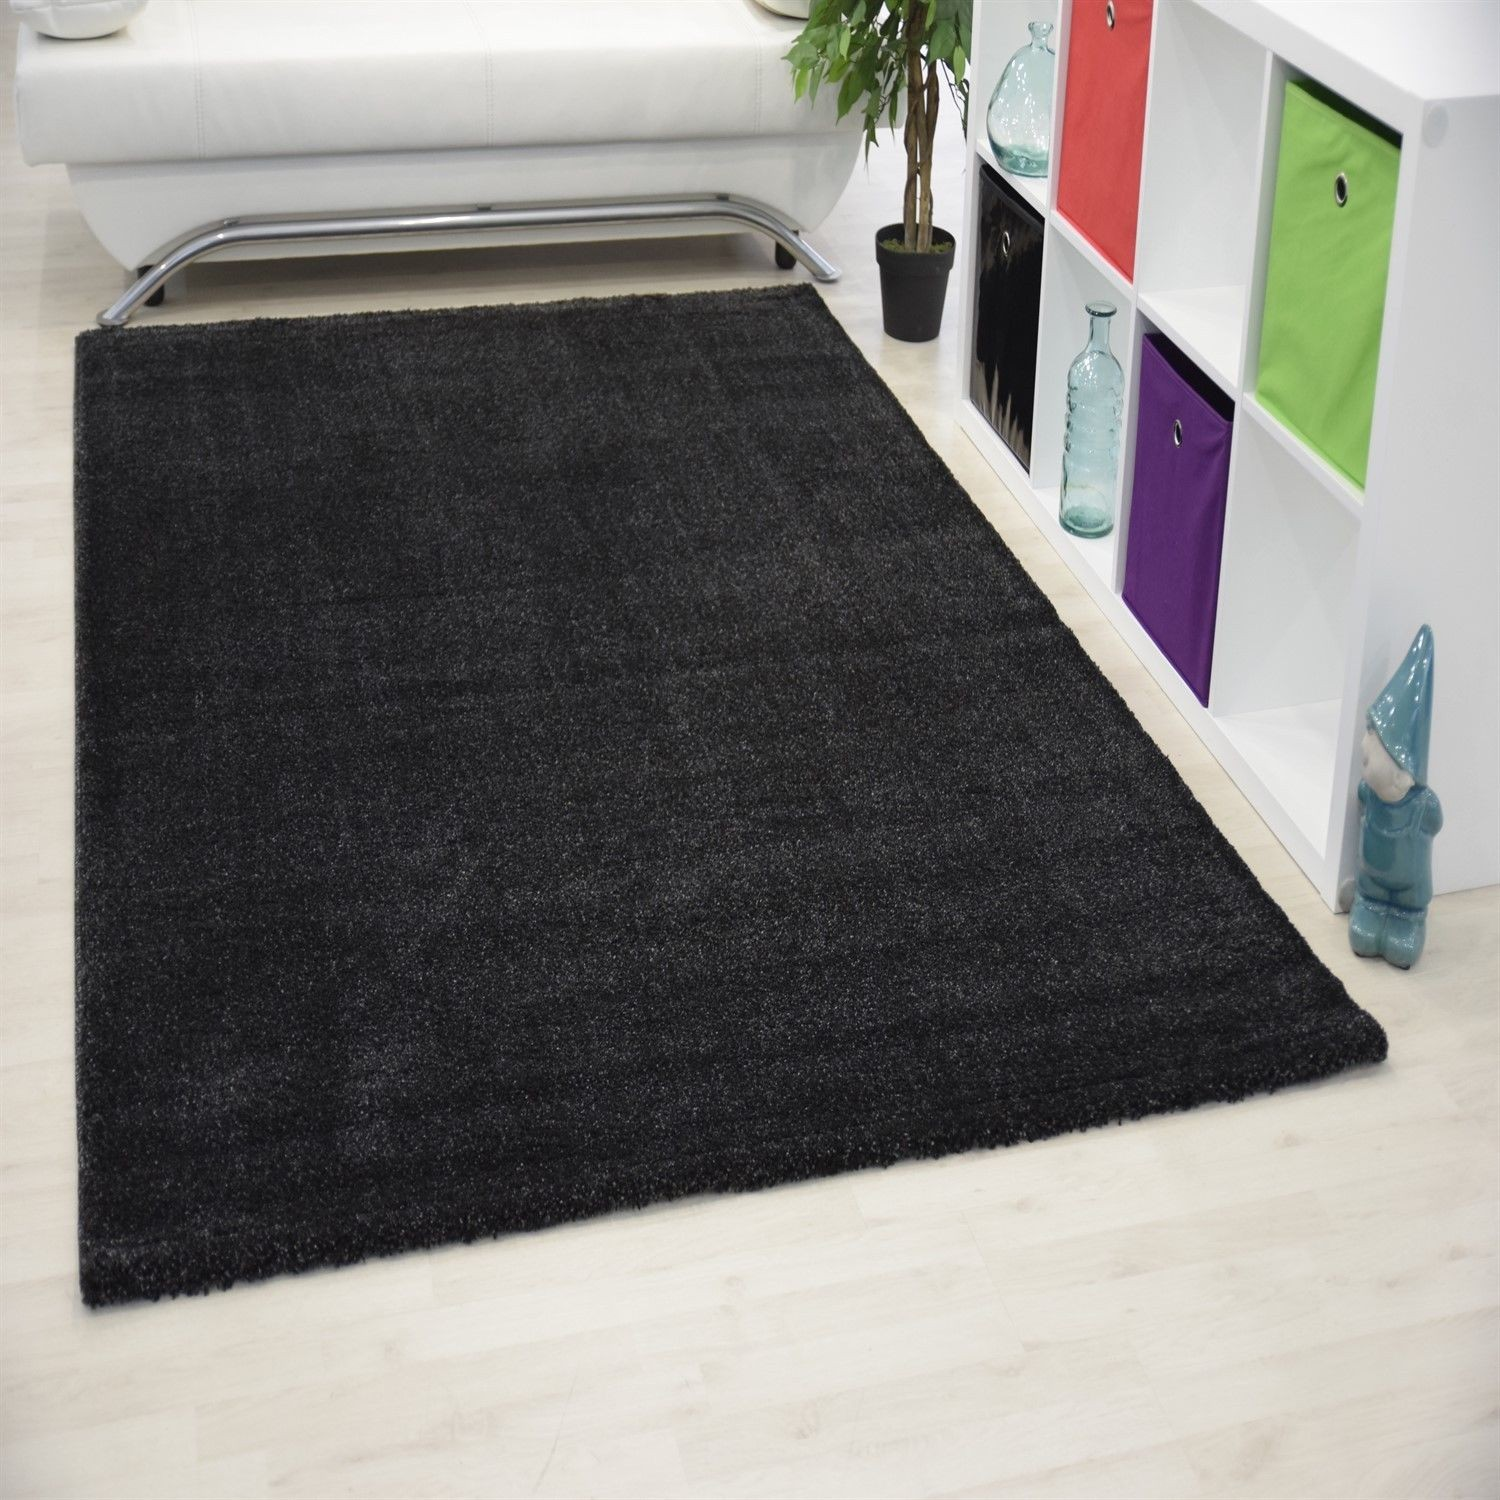 tapis interieur. Black Bedroom Furniture Sets. Home Design Ideas